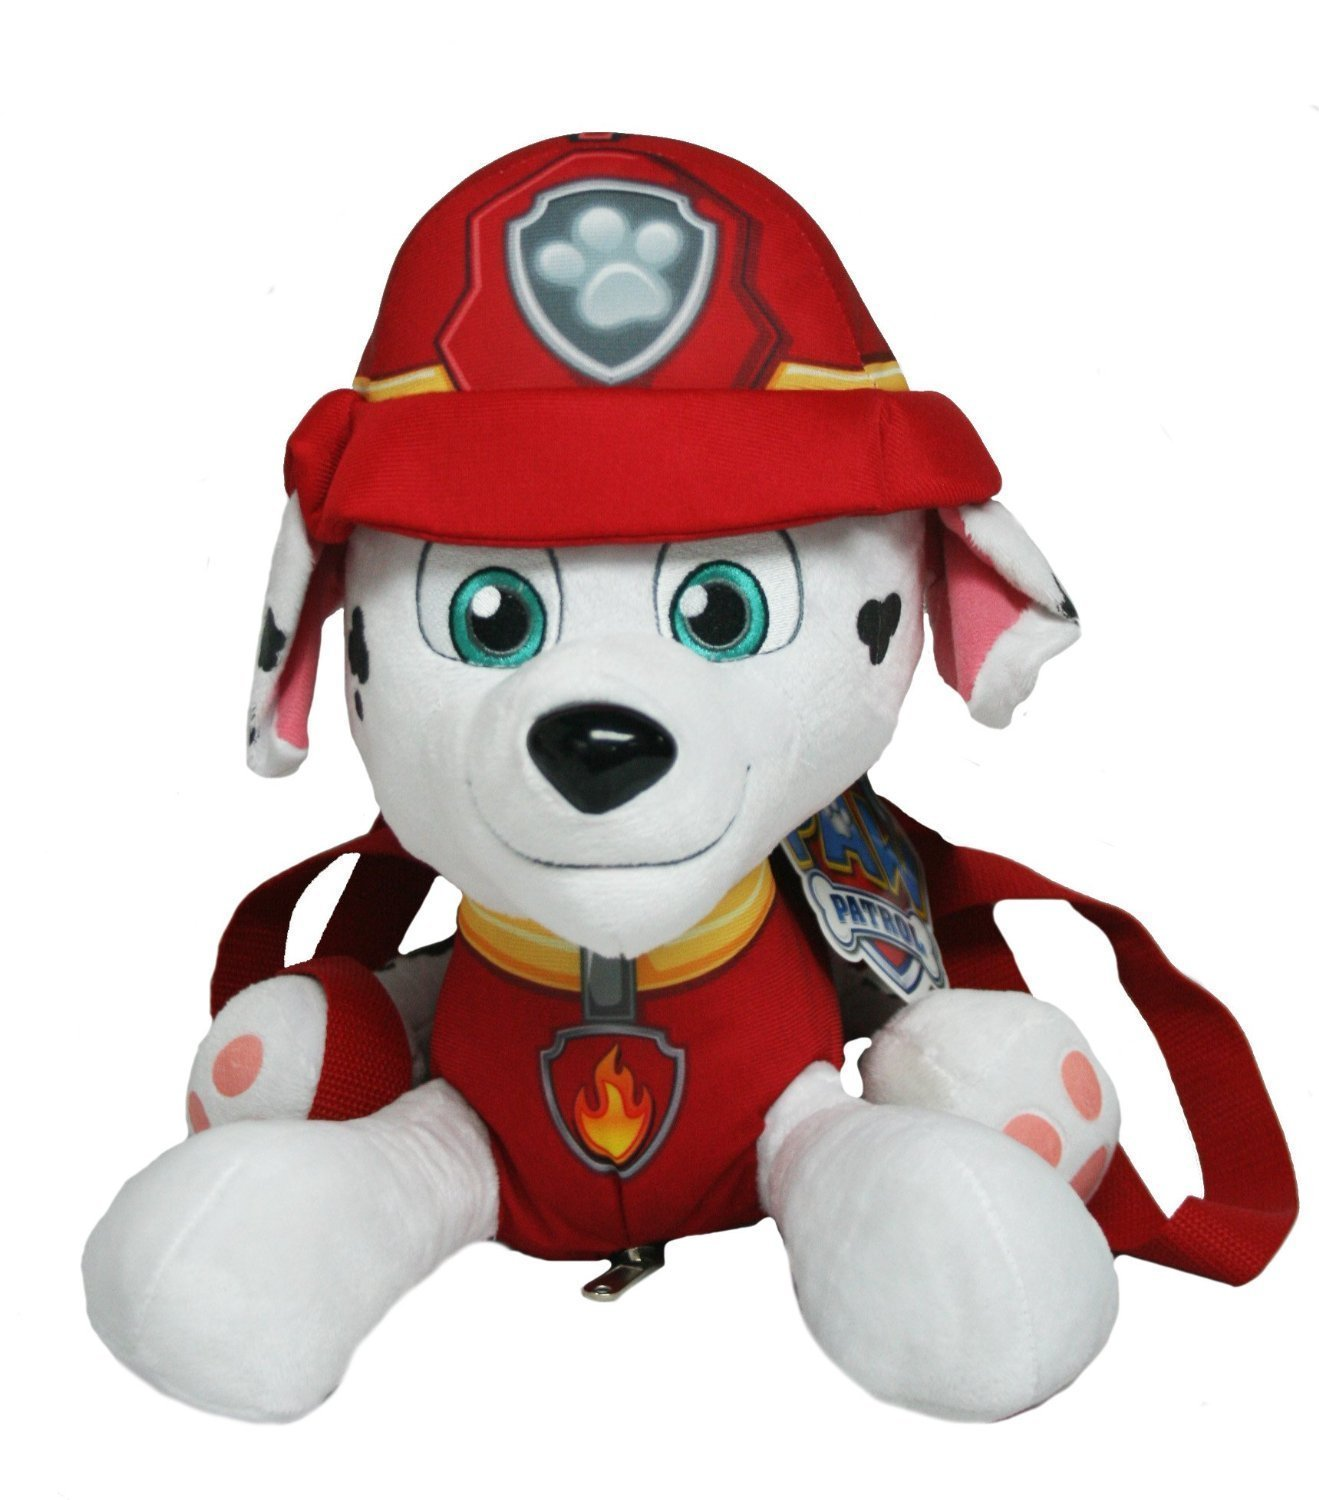 "Paw Patrol 14"" Marshall Plush Backpack Stuffed Animal, NICKELODEON PAW PATROL By... by"